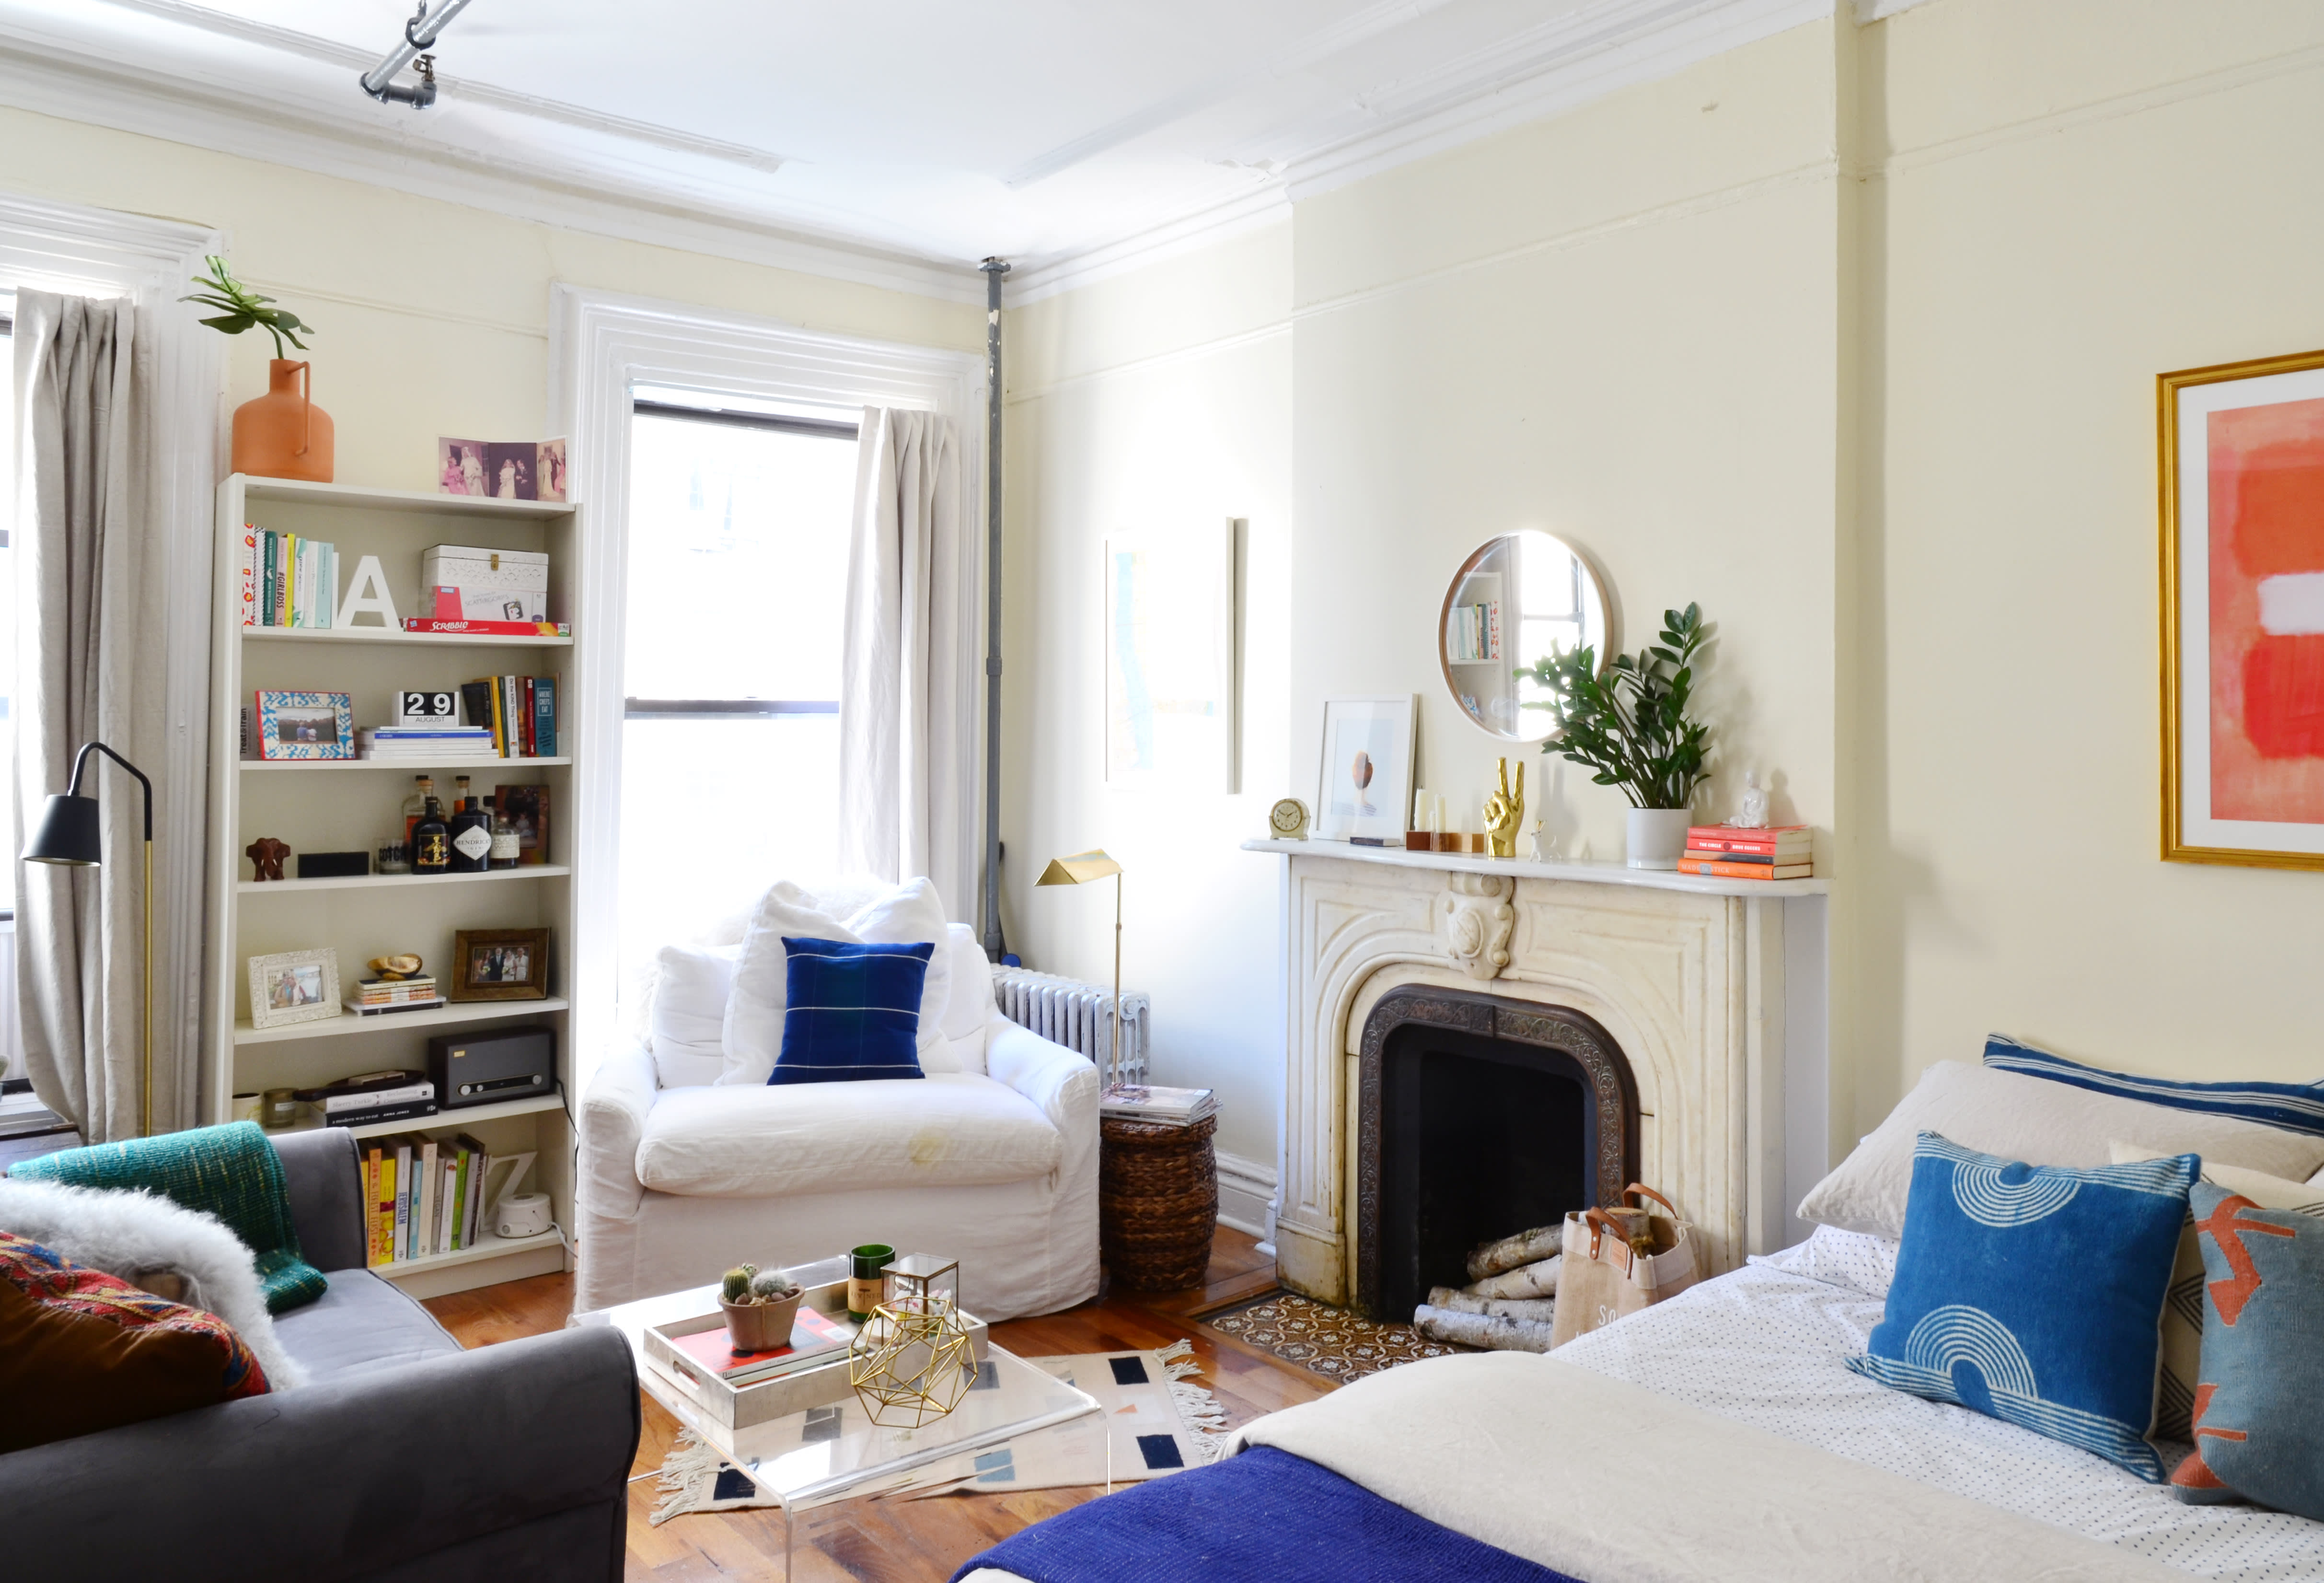 House Tour: A Dreamy 400 Square Foot Brooklyn Studio ...